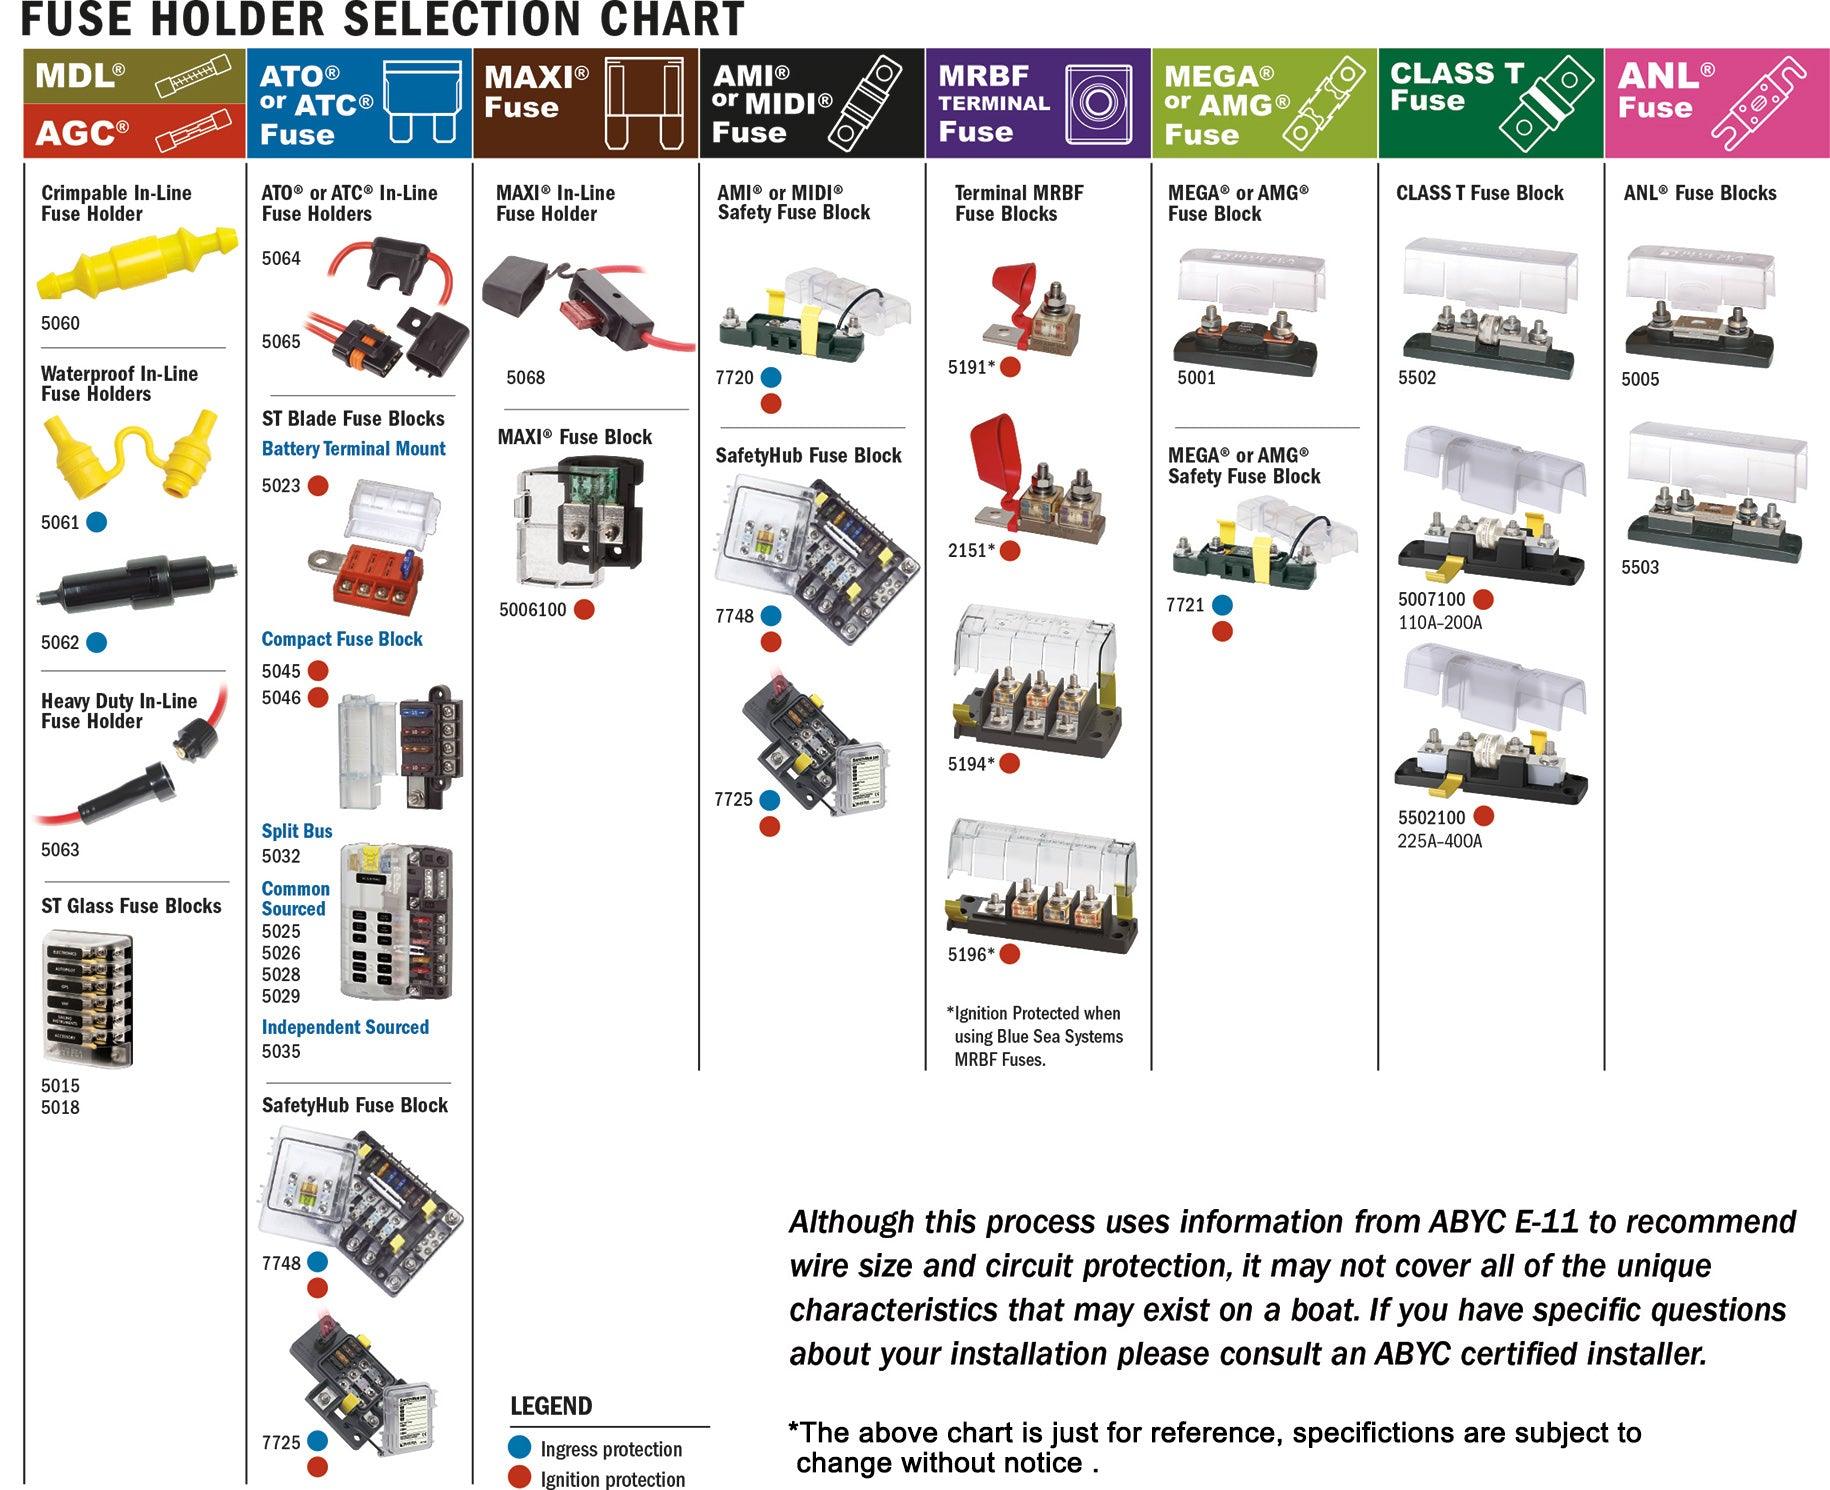 Power inverter wire size data wiring diagram select a fuse fuse holder for your inverter dc battery installation rh novopal com 1500 watt power inverter wire size 750 watt power inverter wire size keyboard keysfo Choice Image